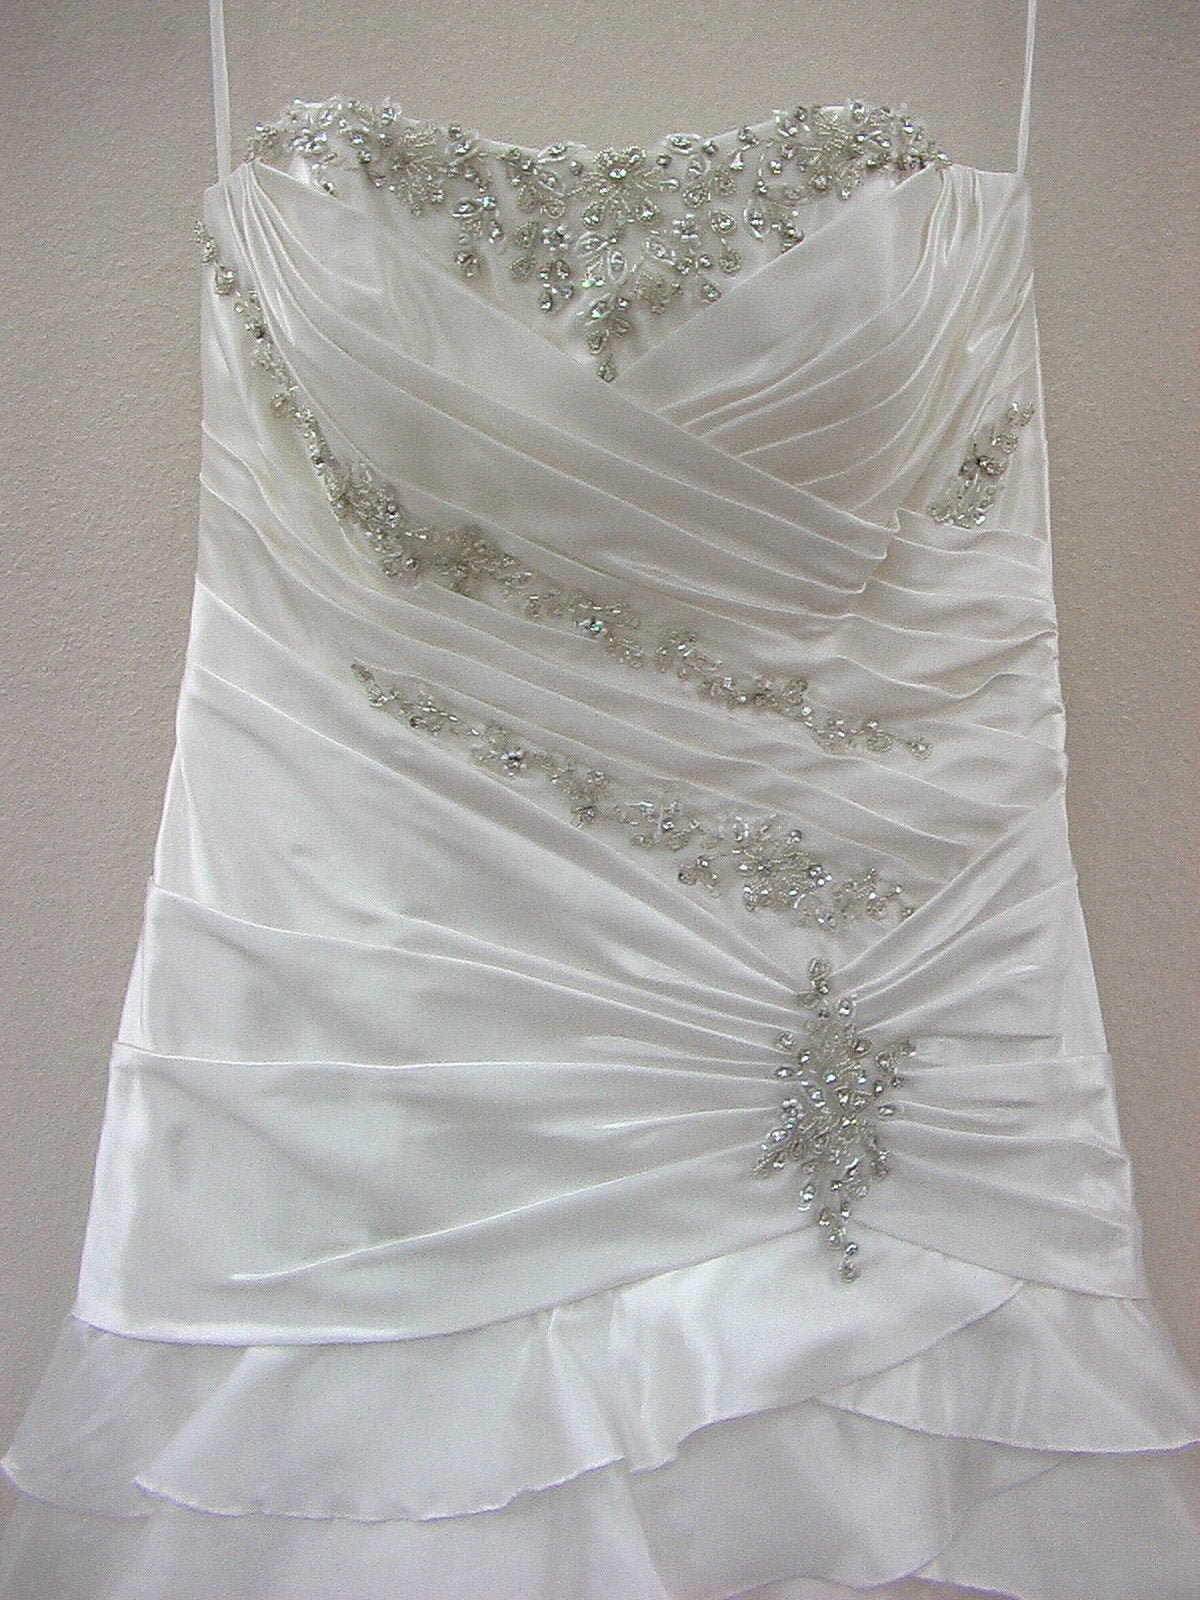 Mori Lee 1617 Ivory/Silver size 14 In Stock Wedding Dress - Tom's Bridal